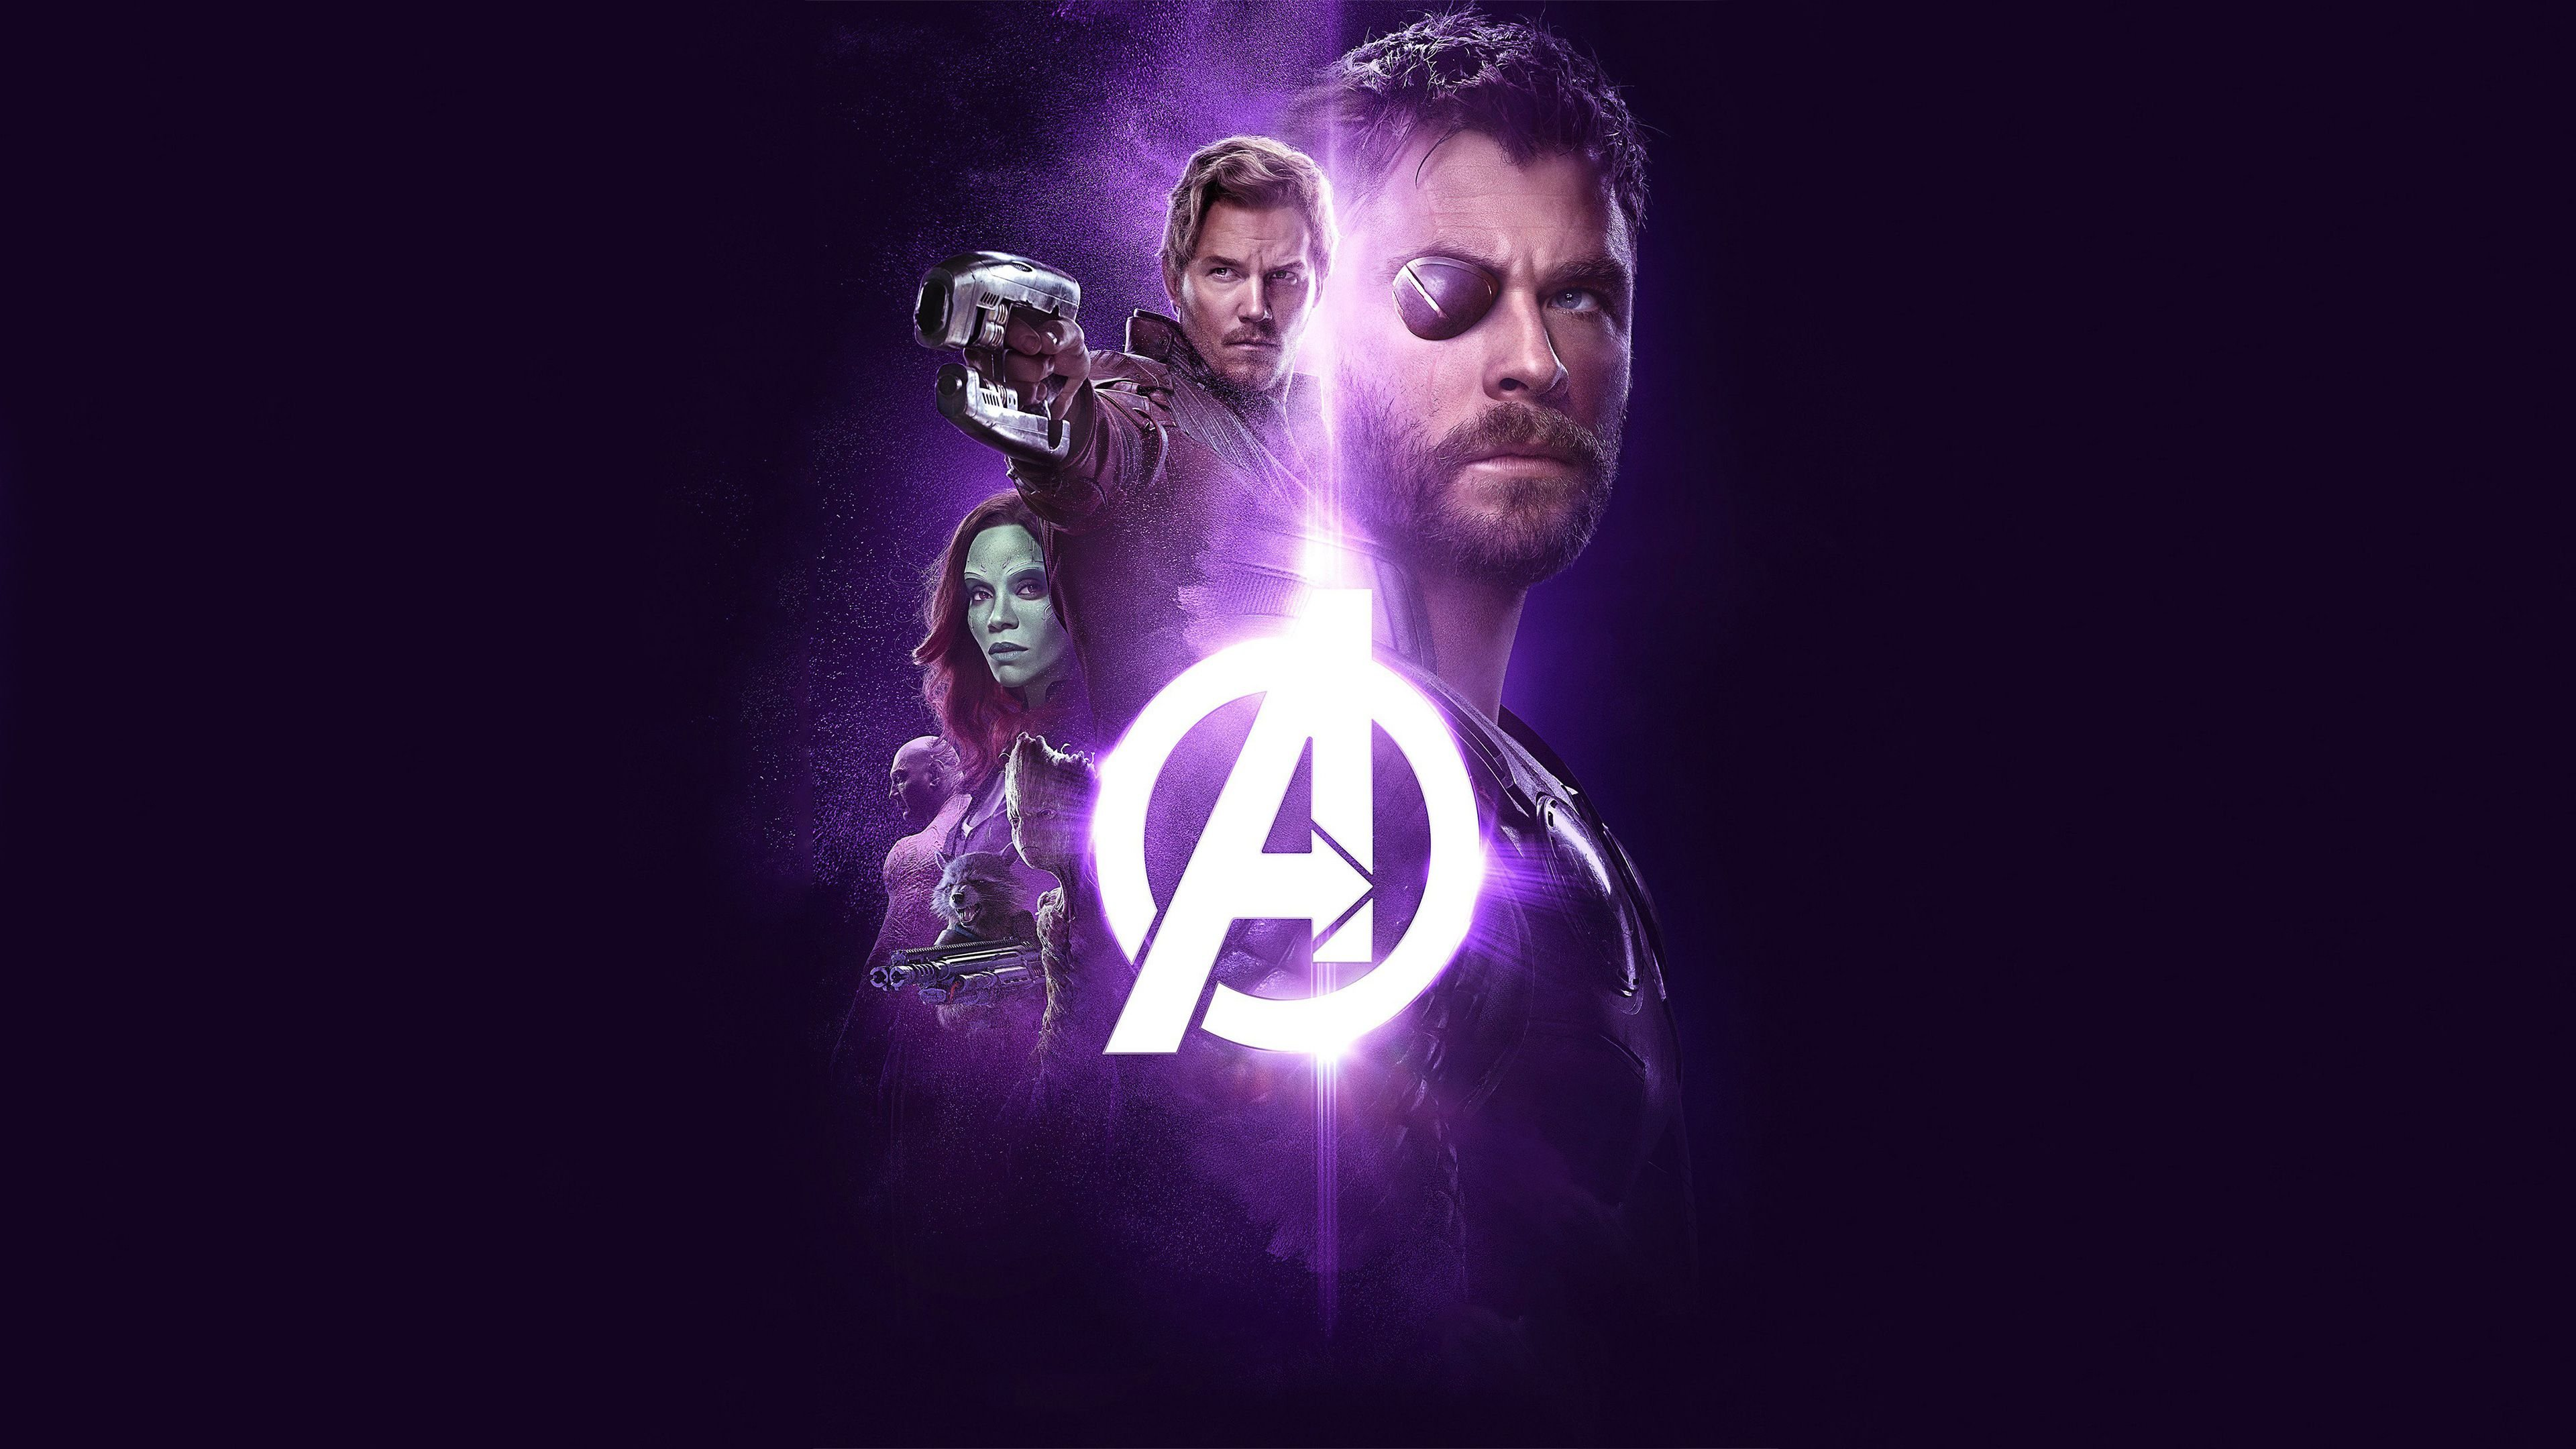 Avengers Infinity War 4k Wallpapers Top Free Avengers Infinity War